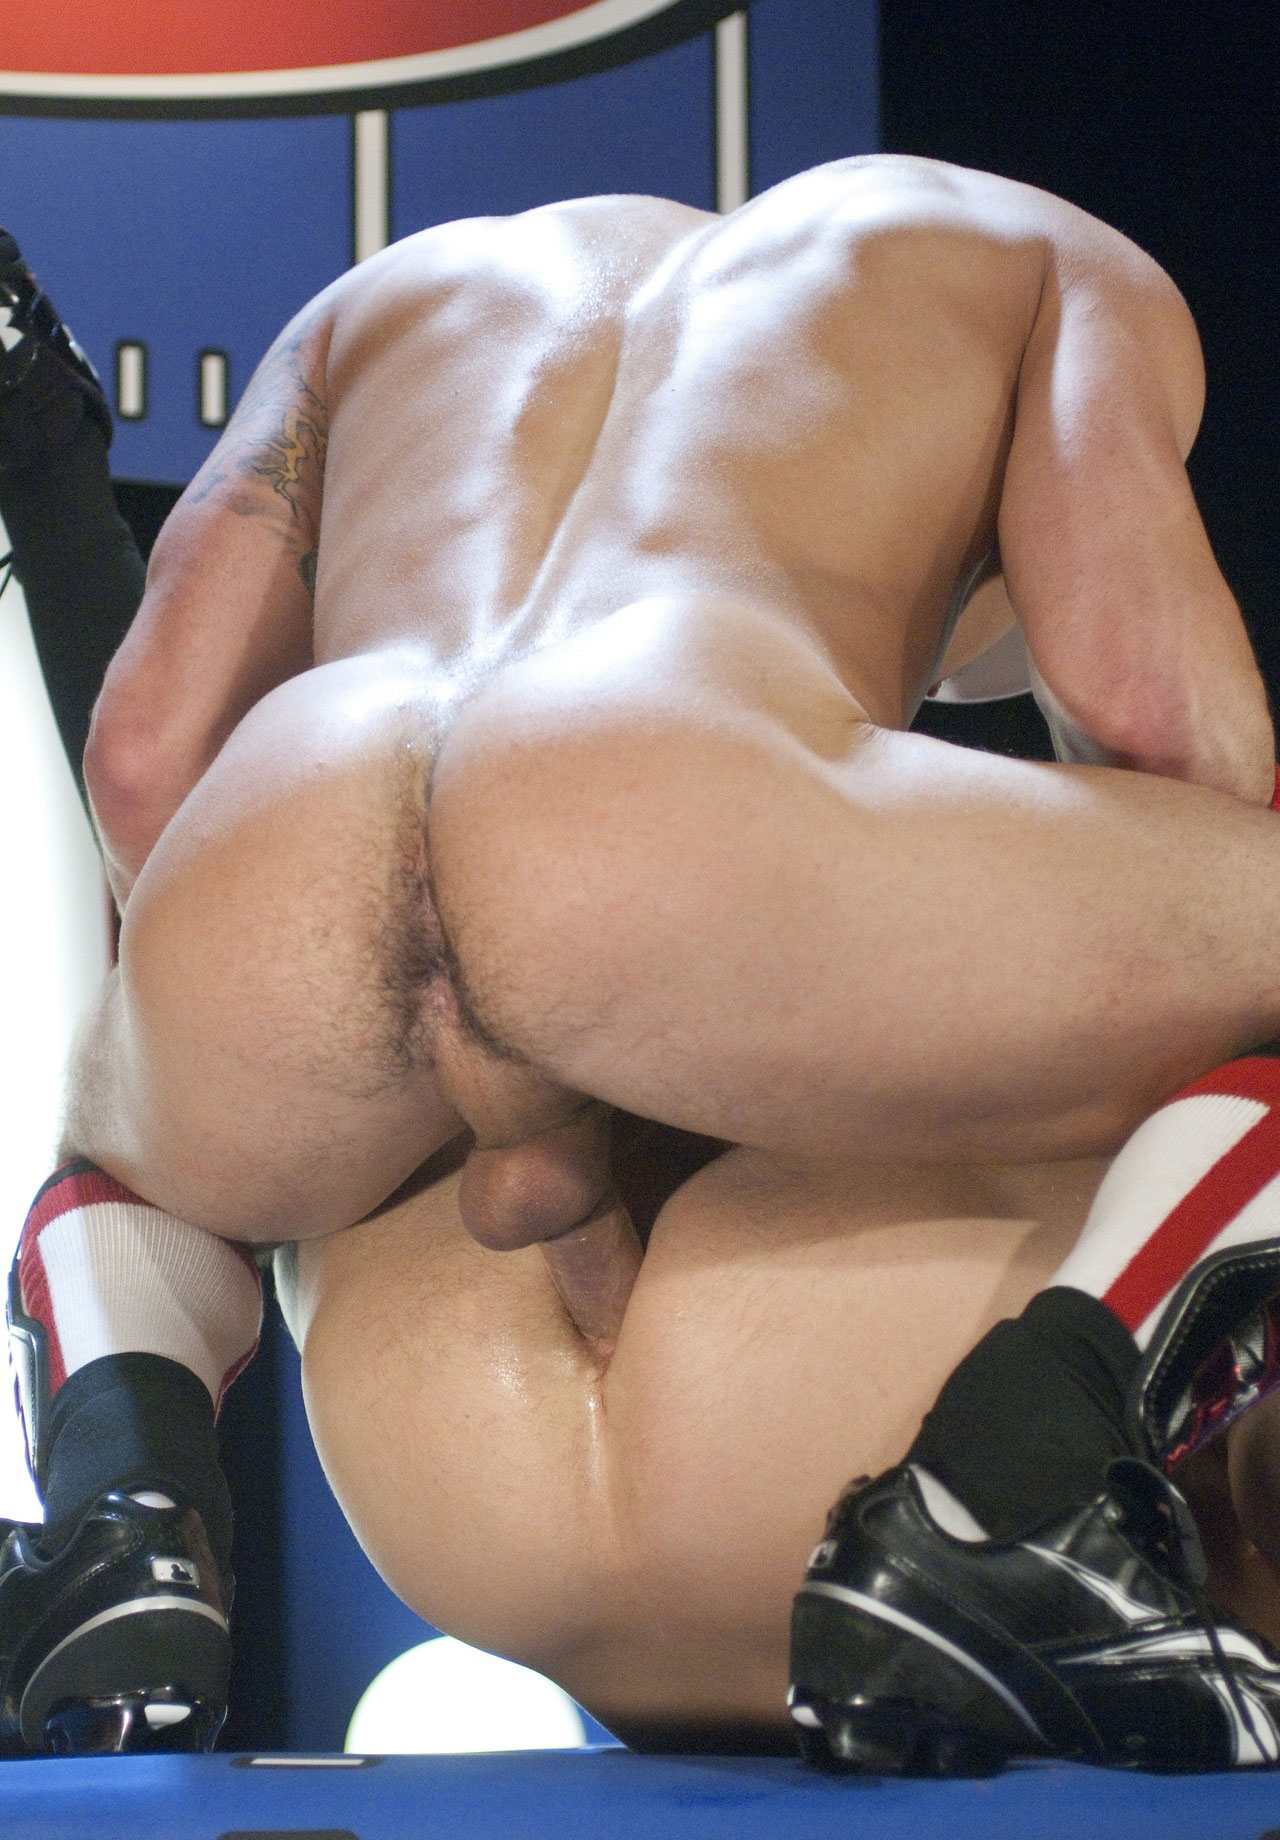 Galerias Fotos Hardcore Tgp Videos Porno Gay Hd